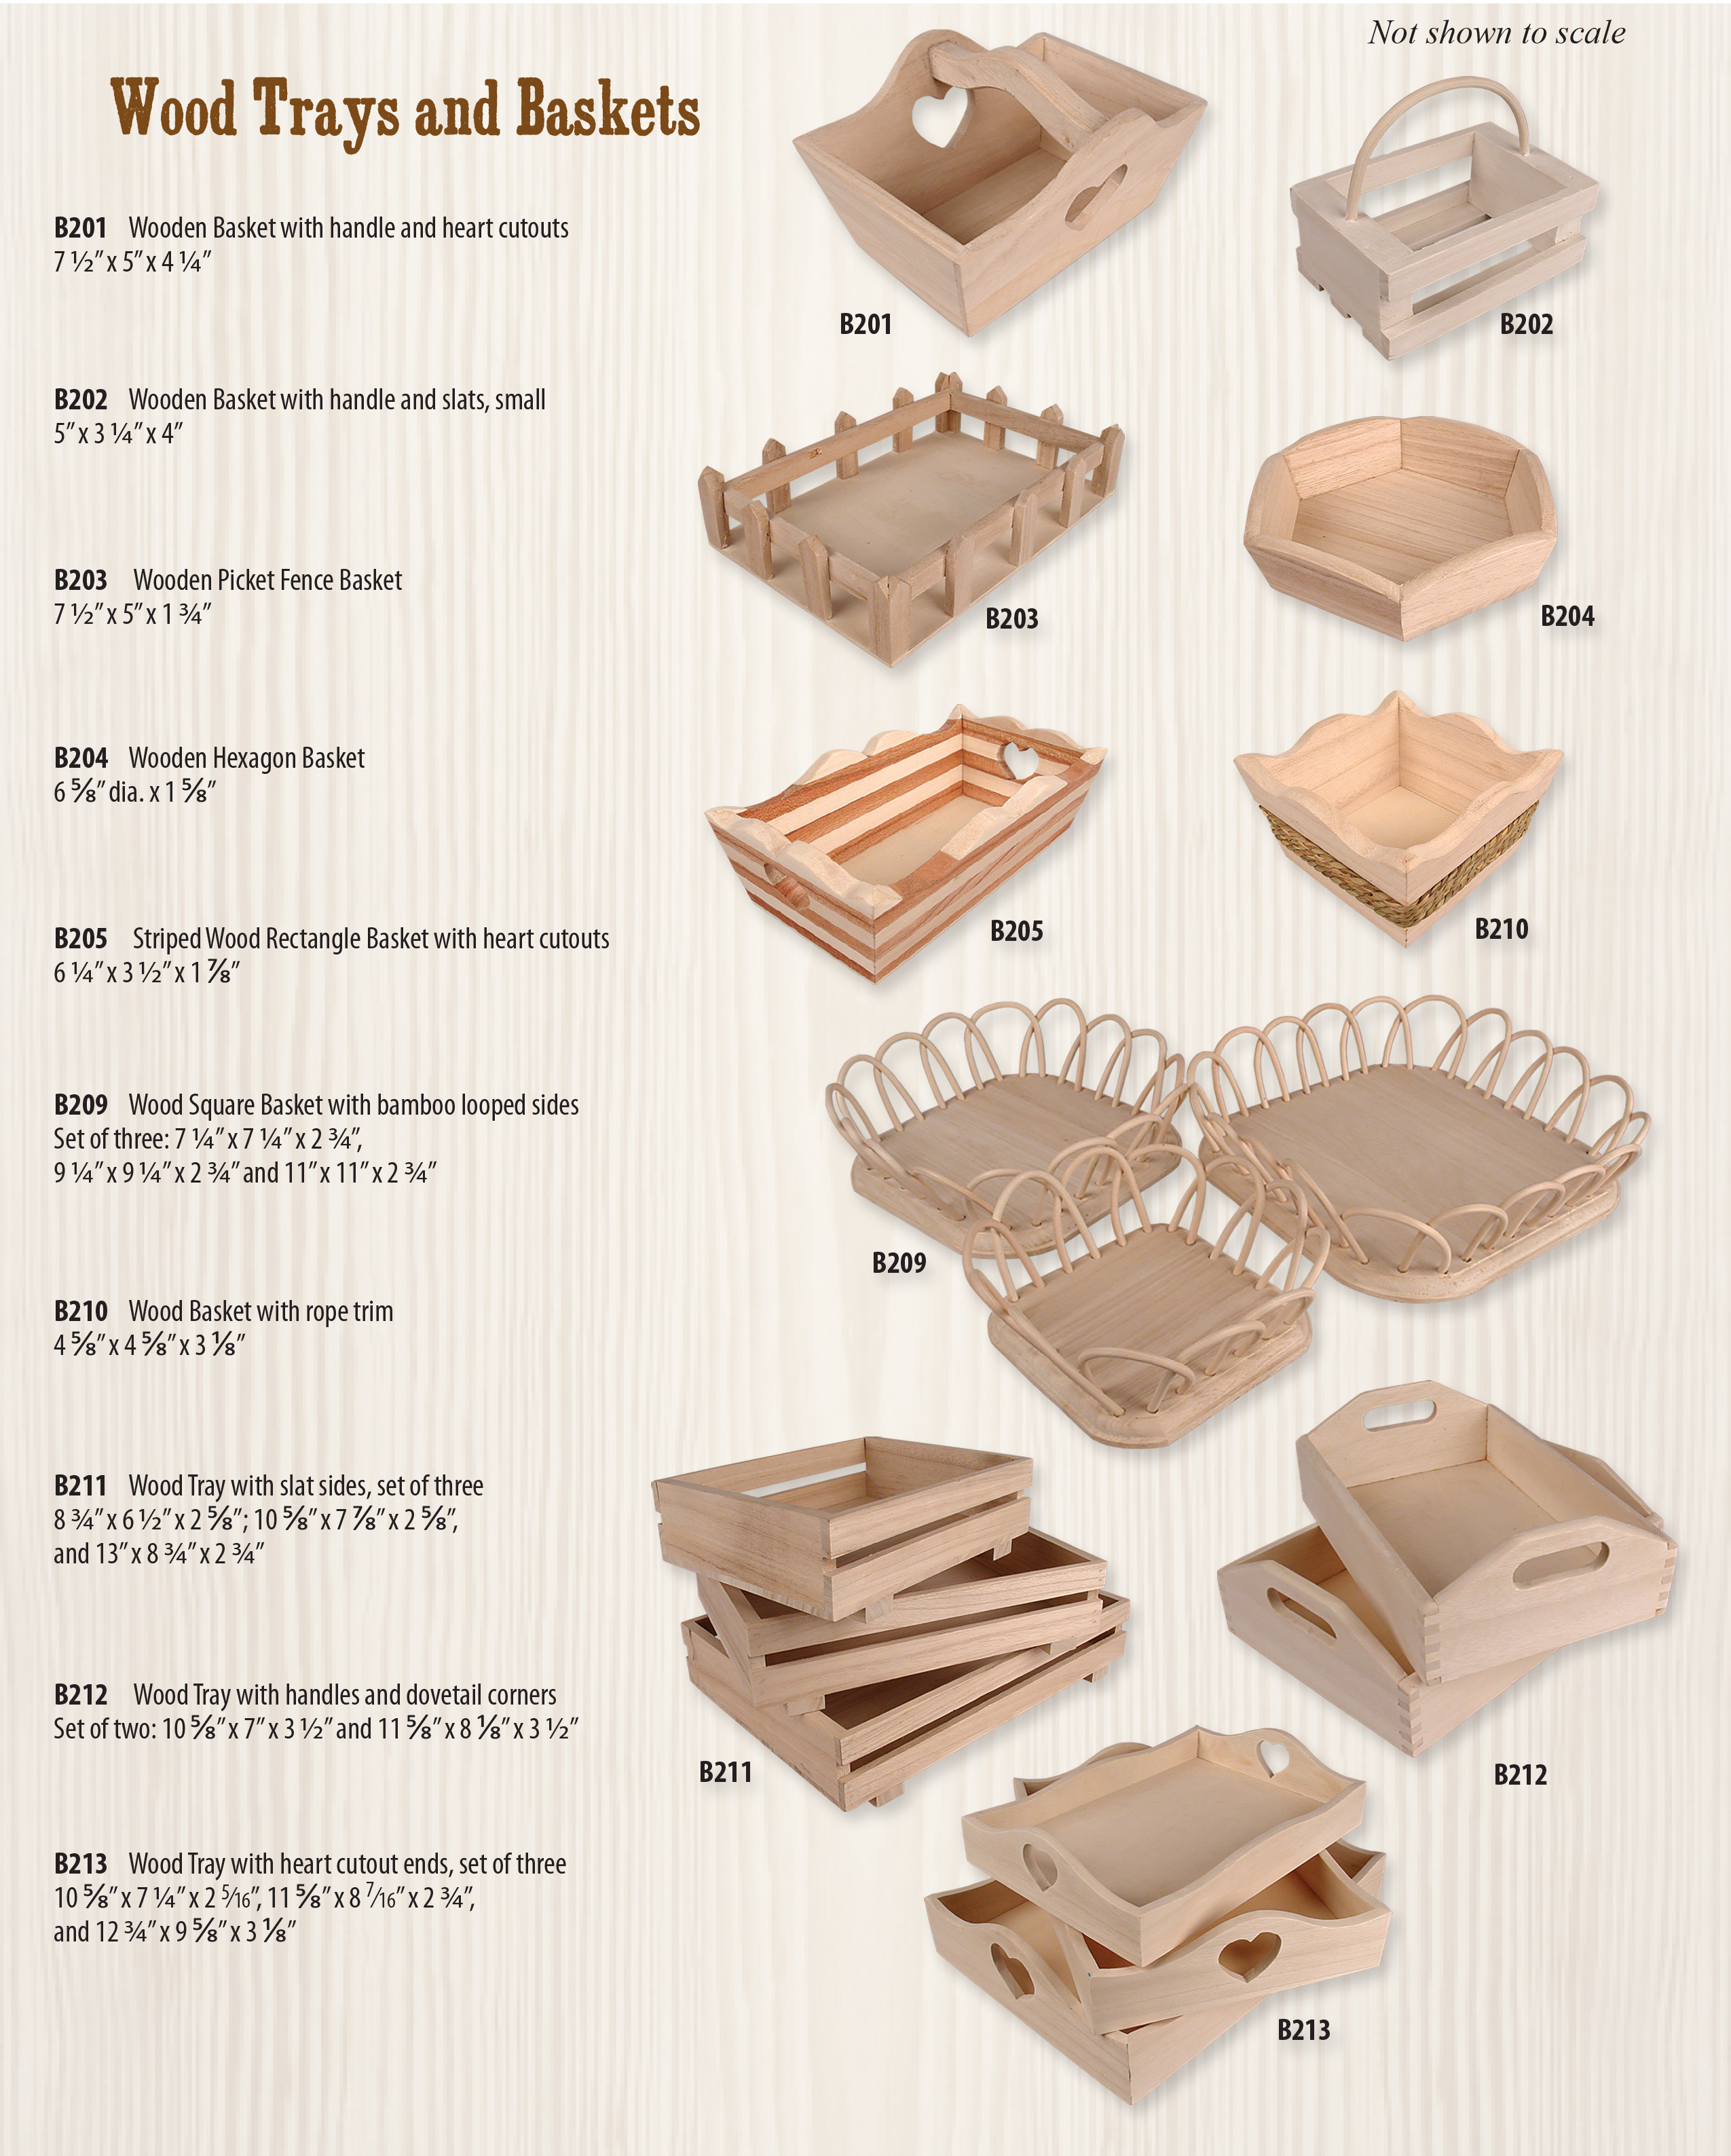 Wood Trays and Baskets Ad